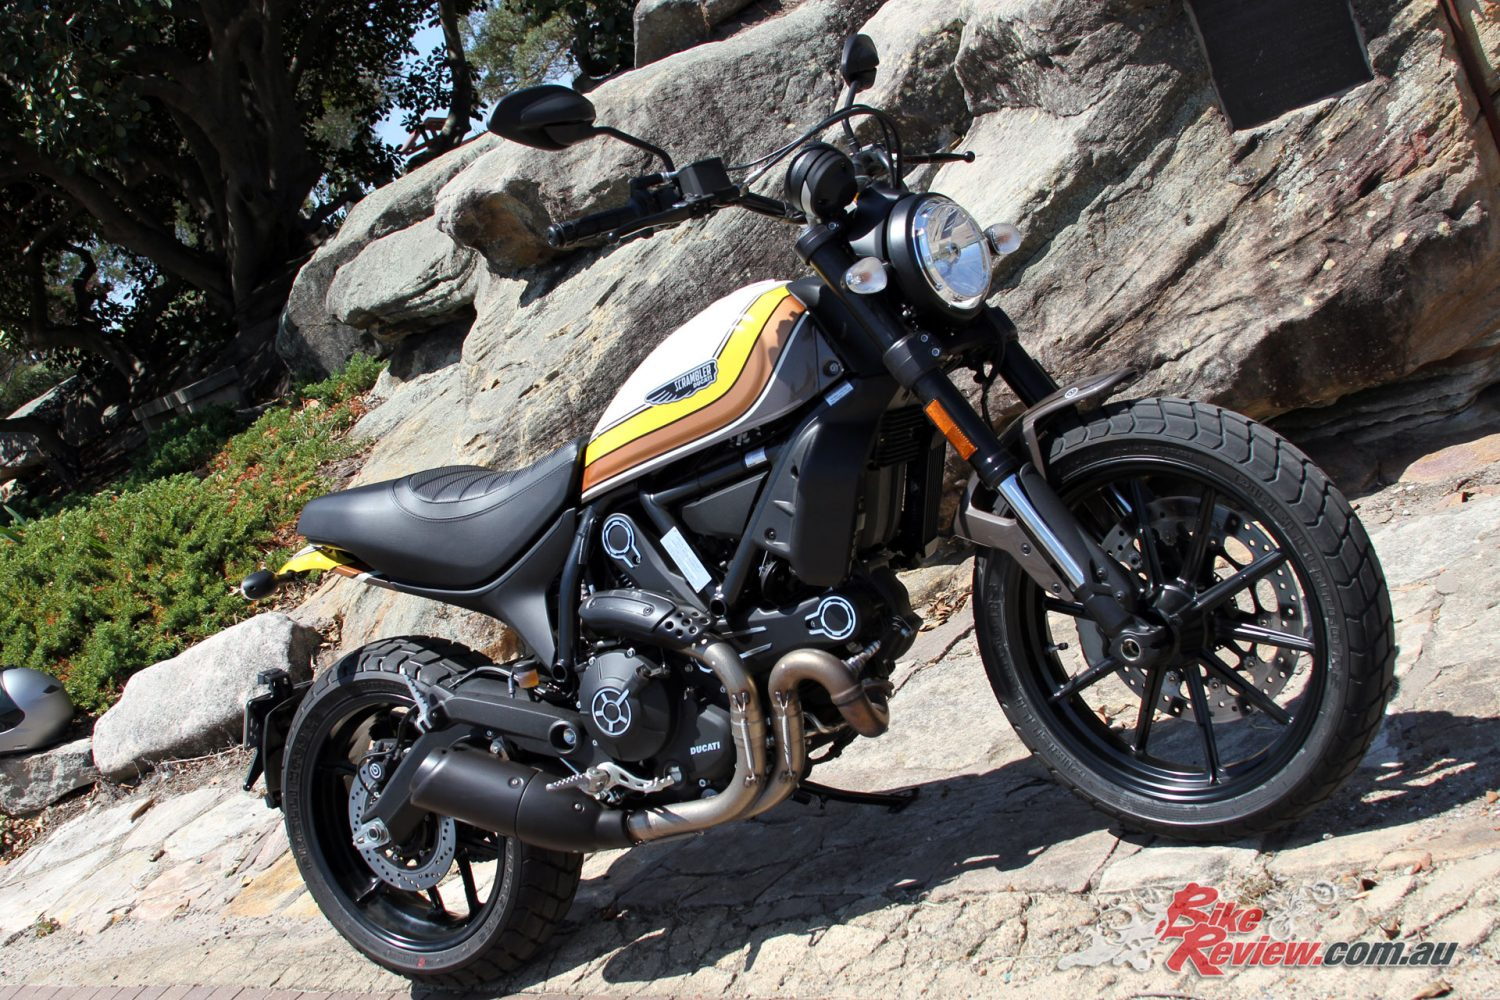 The Ducat Scrambler Mach 2.0